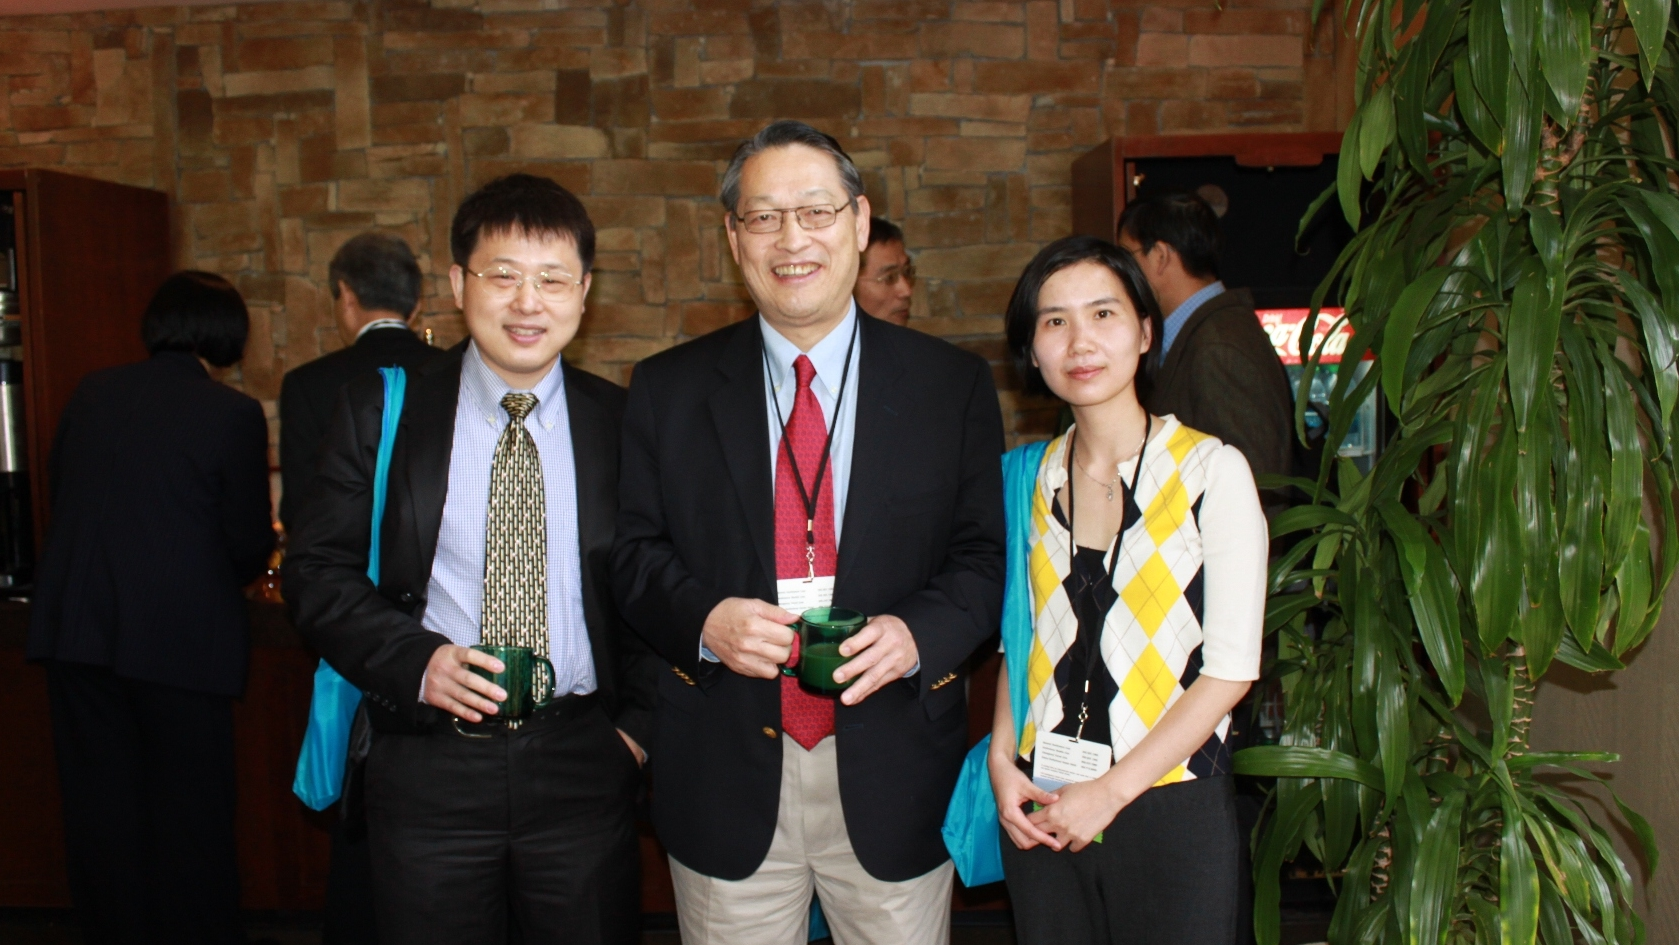 """Dr. Lincoln Chen (center), President of the CMB with Dr. Zhuo (Adam) Chen (left), Chair of the CHPAMS (2009-2014), and Dr. Xidong Deng (right) at the 2011 Atlanta Westlake Forum III: Health Reforms in the U.S. and China       Normal   0           false   false   false     EN-US   ZH-CN   X-NONE                                                                                                                                                                                                                                                                                                                                                                              /* Style Definitions */  table.MsoNormalTable {mso-style-name:""""Table Normal""""; mso-tstyle-rowband-size:0; mso-tstyle-colband-size:0; mso-style-noshow:yes; mso-style-priority:99; mso-style-parent:""""""""; mso-padding-alt:0in 5.4pt 0in 5.4pt; mso-para-margin-top:0in; mso-para-margin-right:0in; mso-para-margin-bottom:10.0pt; mso-para-margin-left:0in; line-height:115%; mso-pagination:widow-orphan; font-size:11.0pt; font-family:""""Calibri"""",""""sans-serif""""; mso-ascii-font-family:Calibri; mso-ascii-theme-font:minor-latin; mso-hansi-font-family:Calibri; mso-hansi-theme-font:minor-latin; mso-fareast-language:ZH-CN;}"""